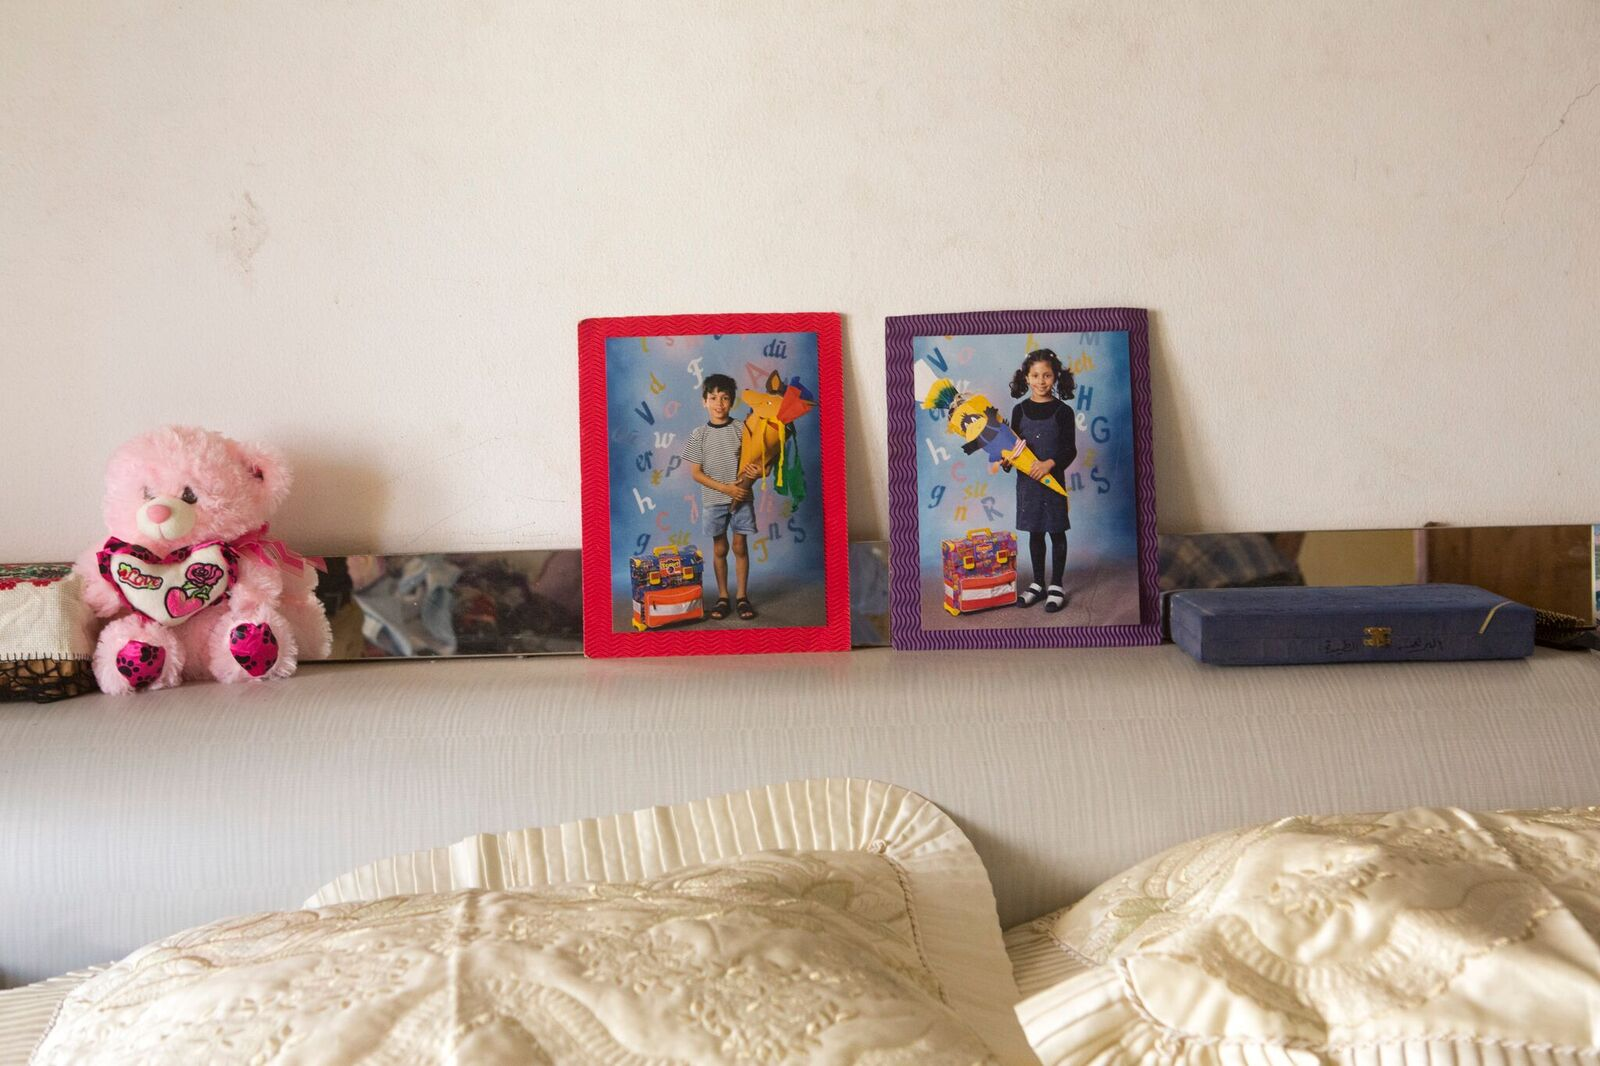 After returning to Gaza, Ibrahim married Taghrid. They had five children. Still, he missed Ramsis and Layla. Their childhood photos took the honorary spot above the bedhead in Kilani's house.